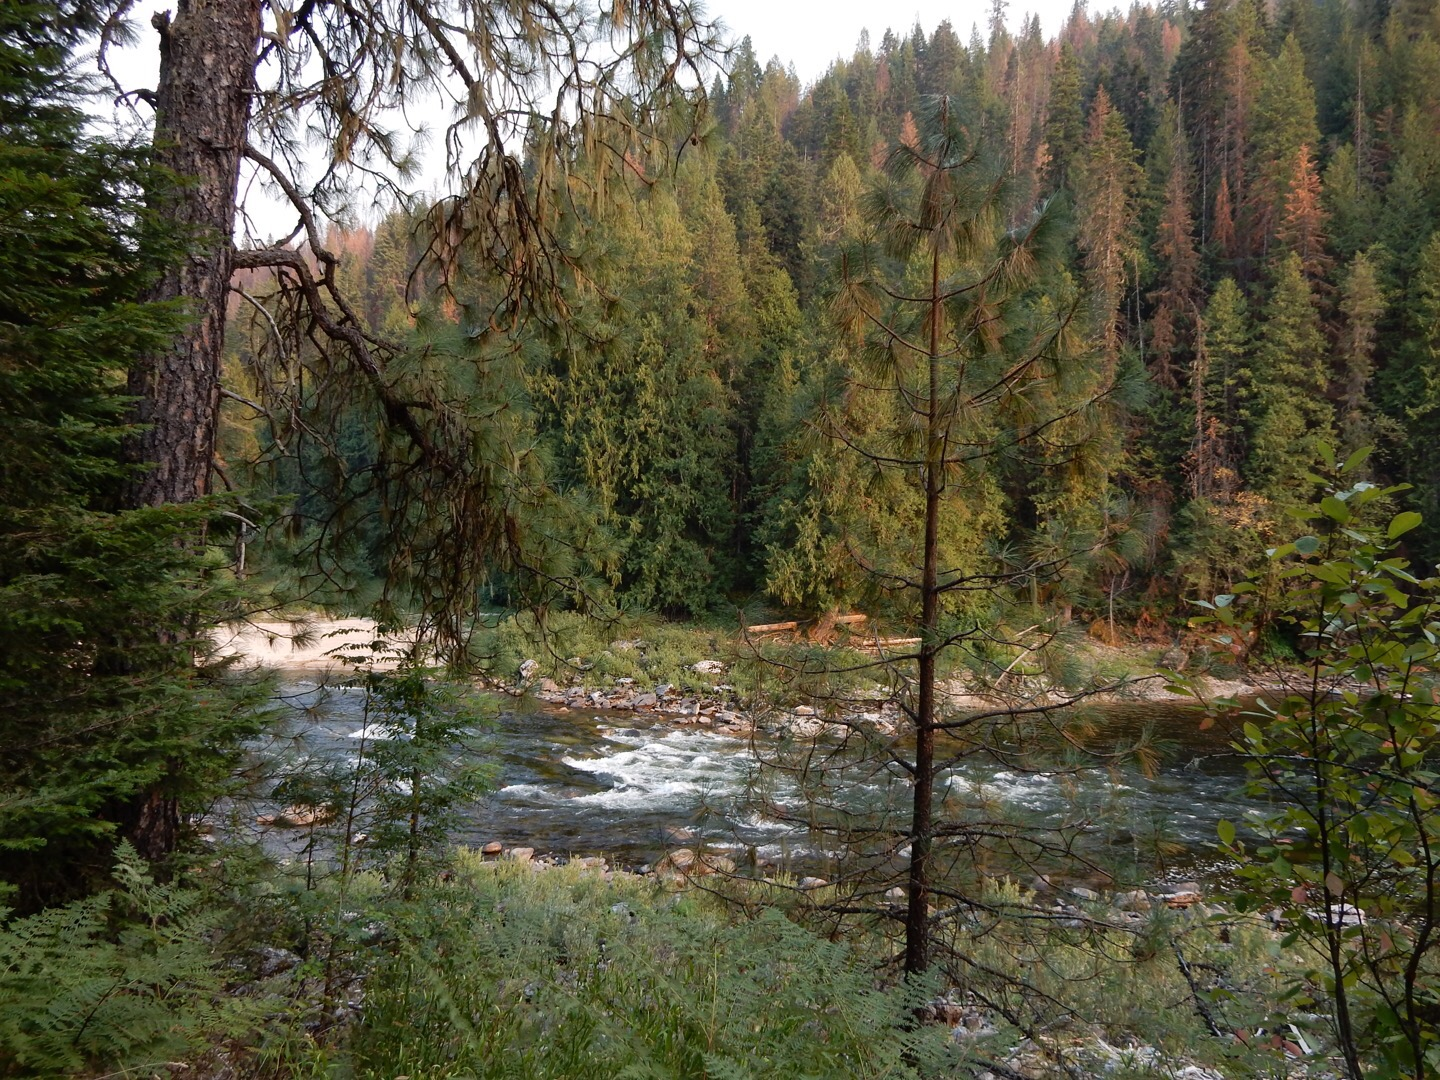 The Clearwater River at Lolo Pass.